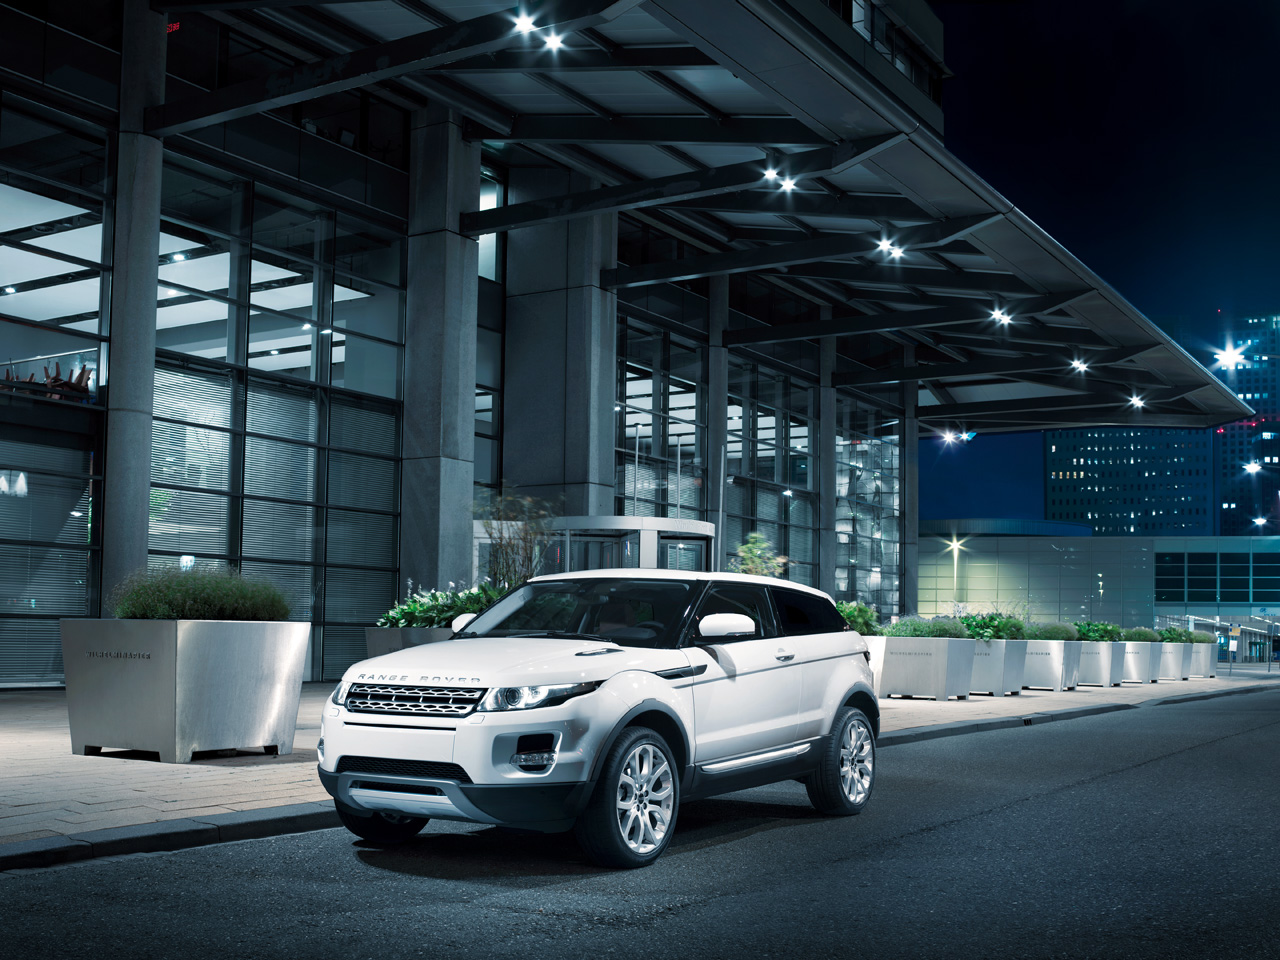 Report says Land Rover Evoque convertible could be in the works